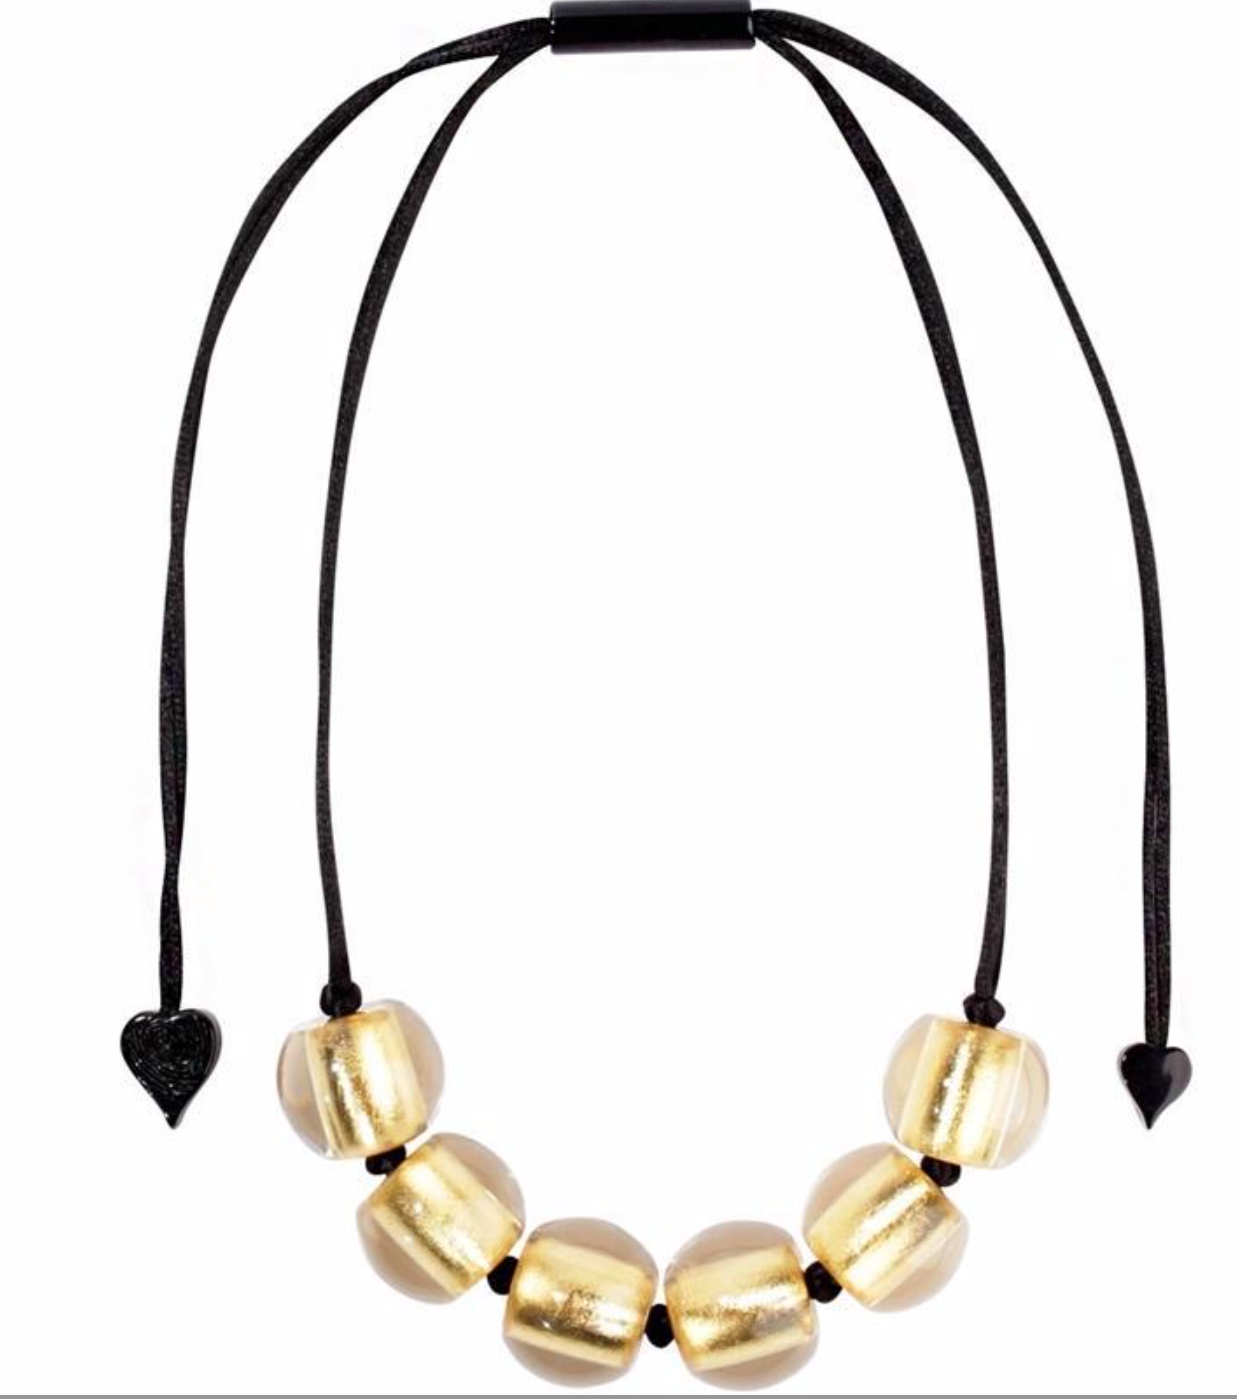 Zsiska Precious Gold Bead Necklace on an Adjustable Rope